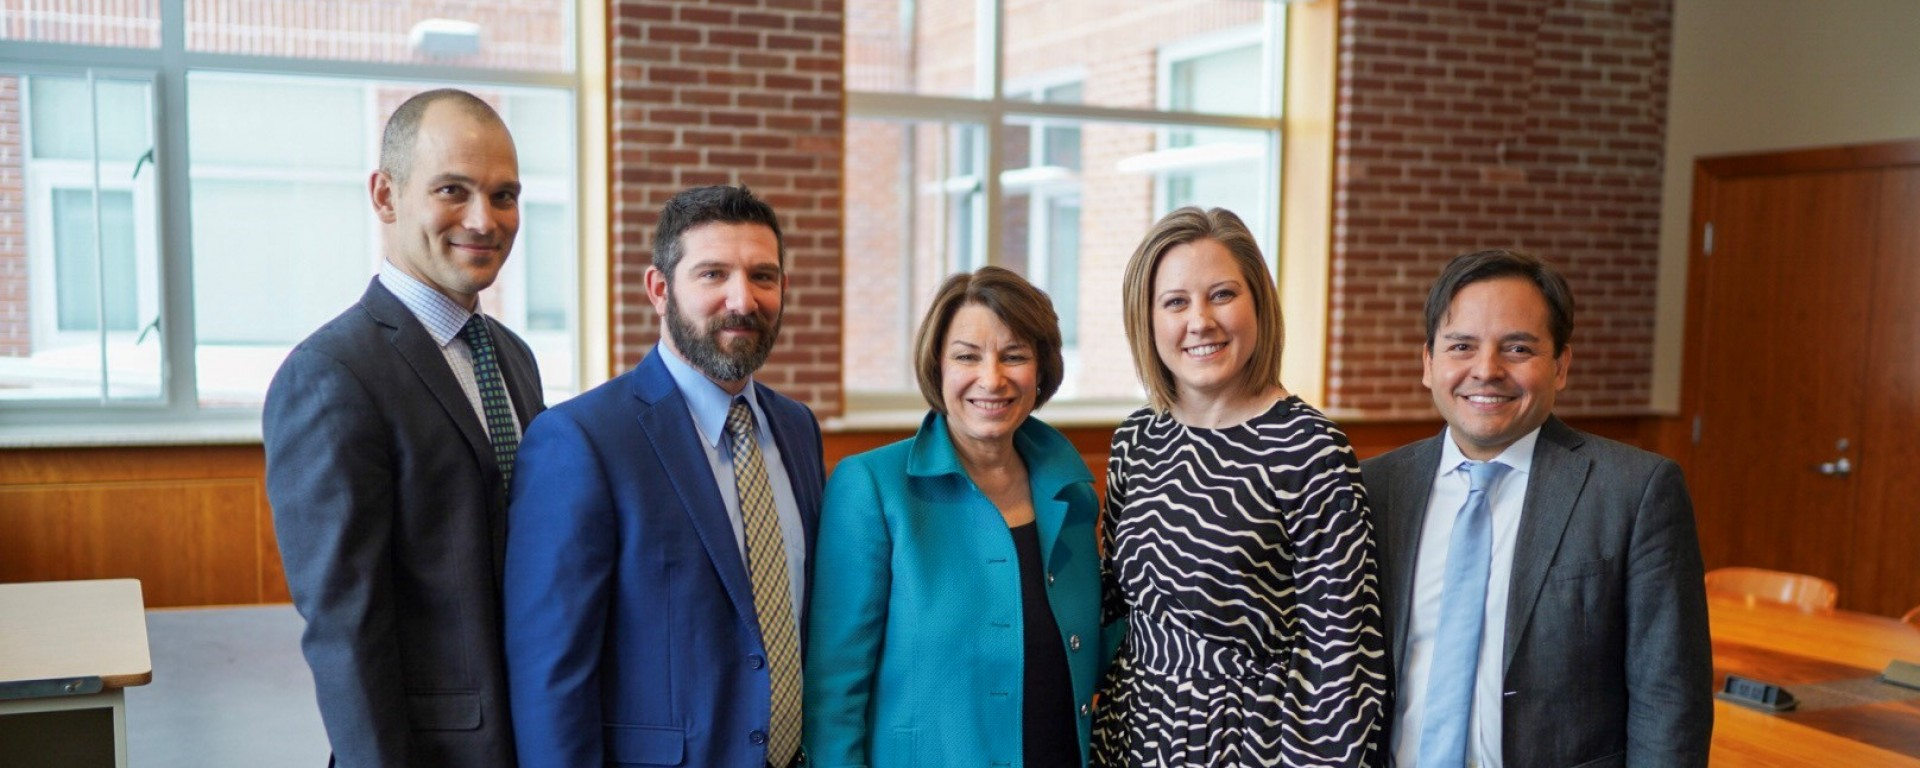 Sen. Amy Klobuchar with (from left) Jed Herrmann (Results For America), Dan Bromberg (Carsey School), Sadie O'Connor (Minnesota Reading Corps), and David Medina (Results For America).